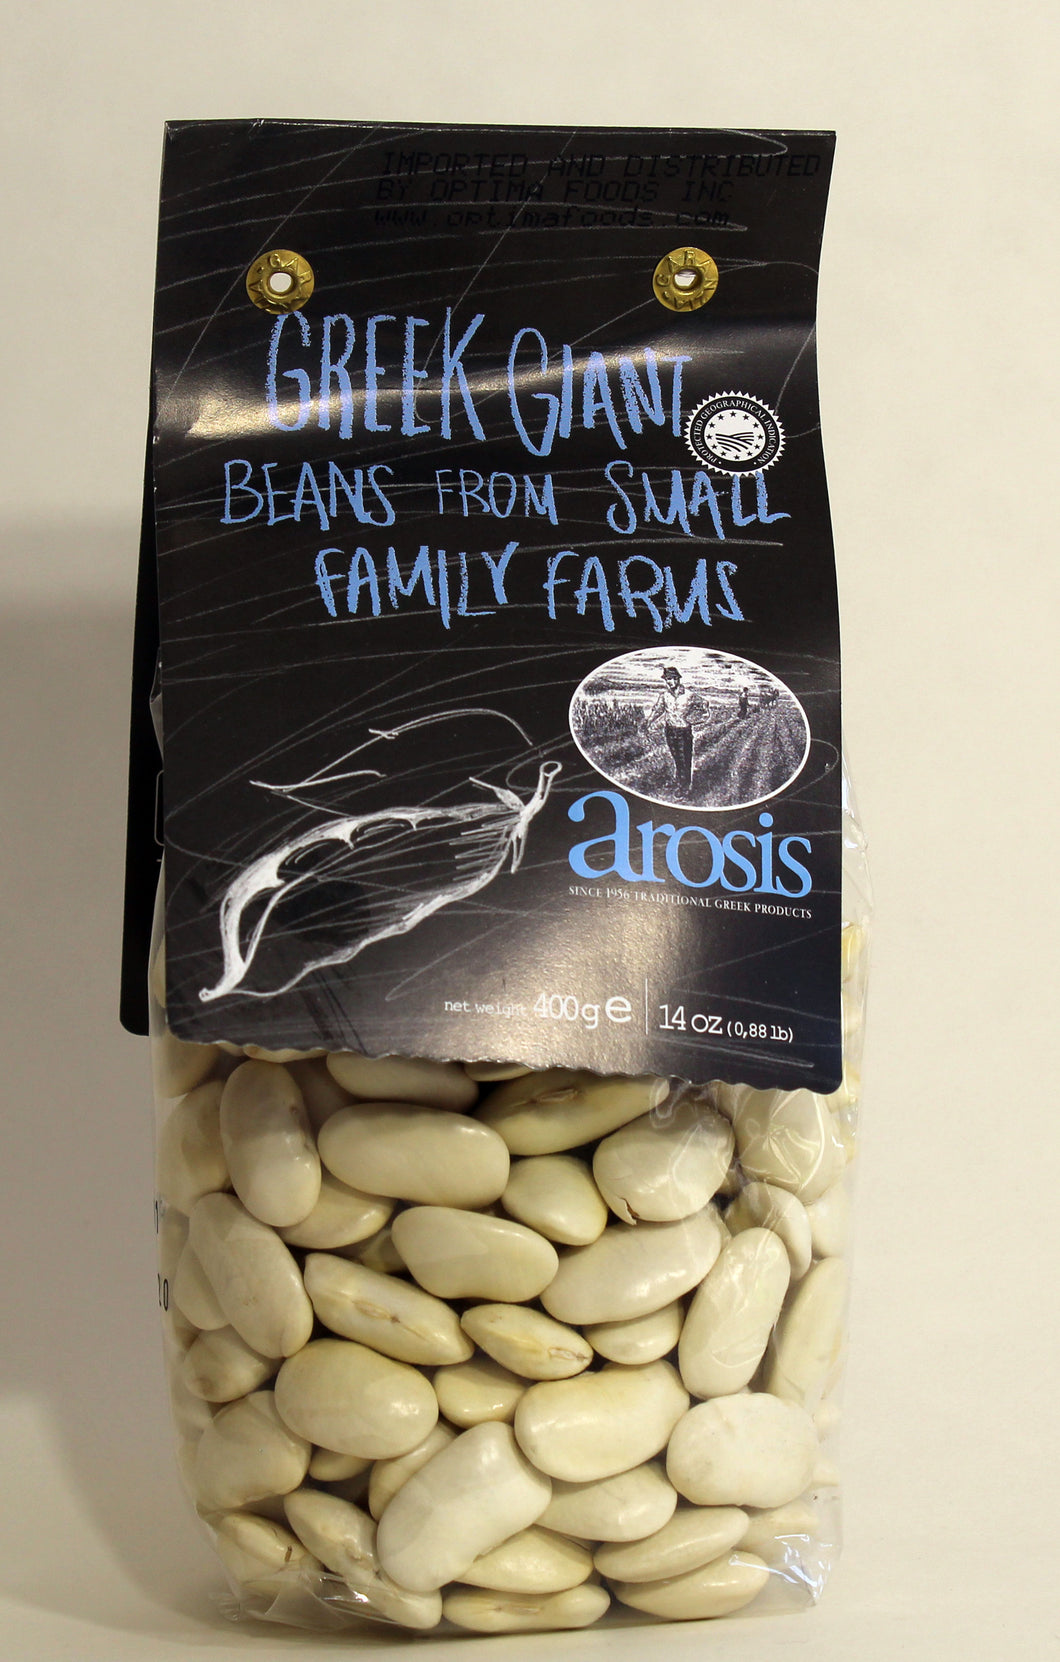 Greek Giant Dry Beans